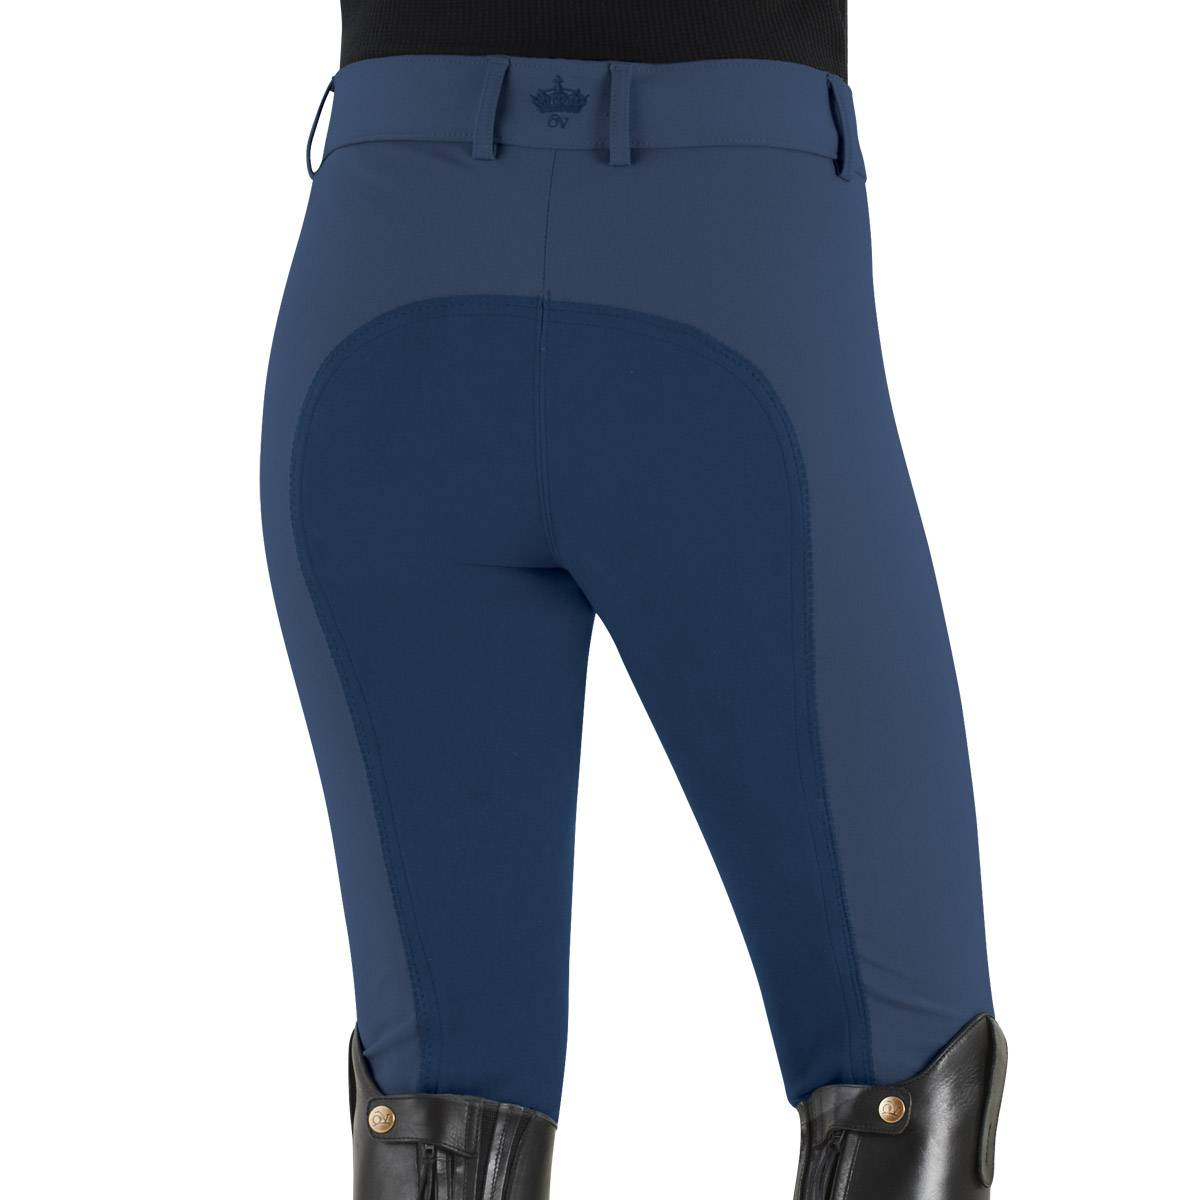 Ovation Ladies Celebrity Euroweave DX Full Seat Breech